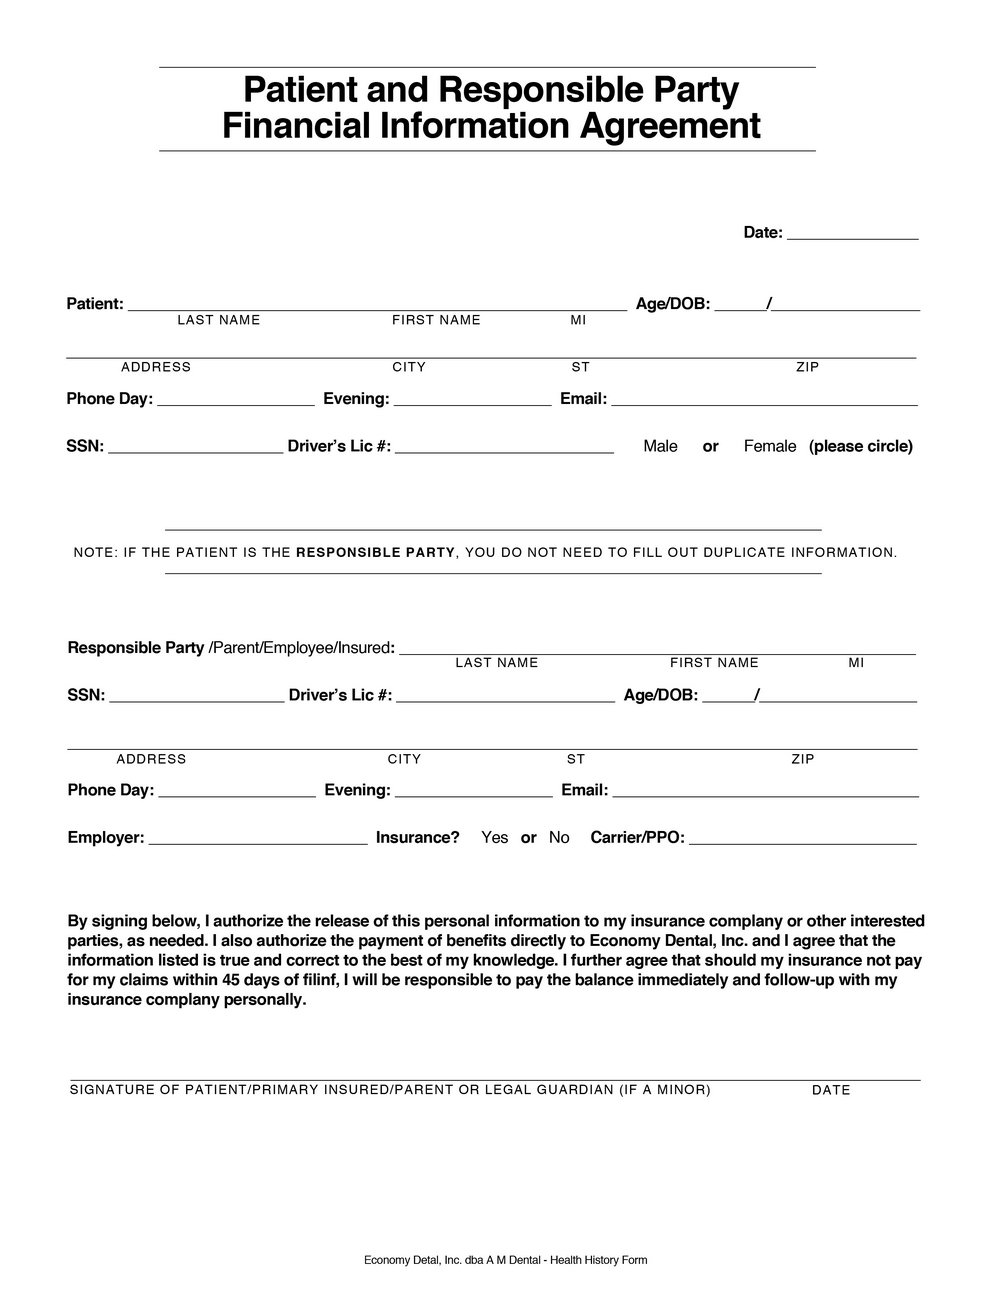 Medical Financial Agreement Template